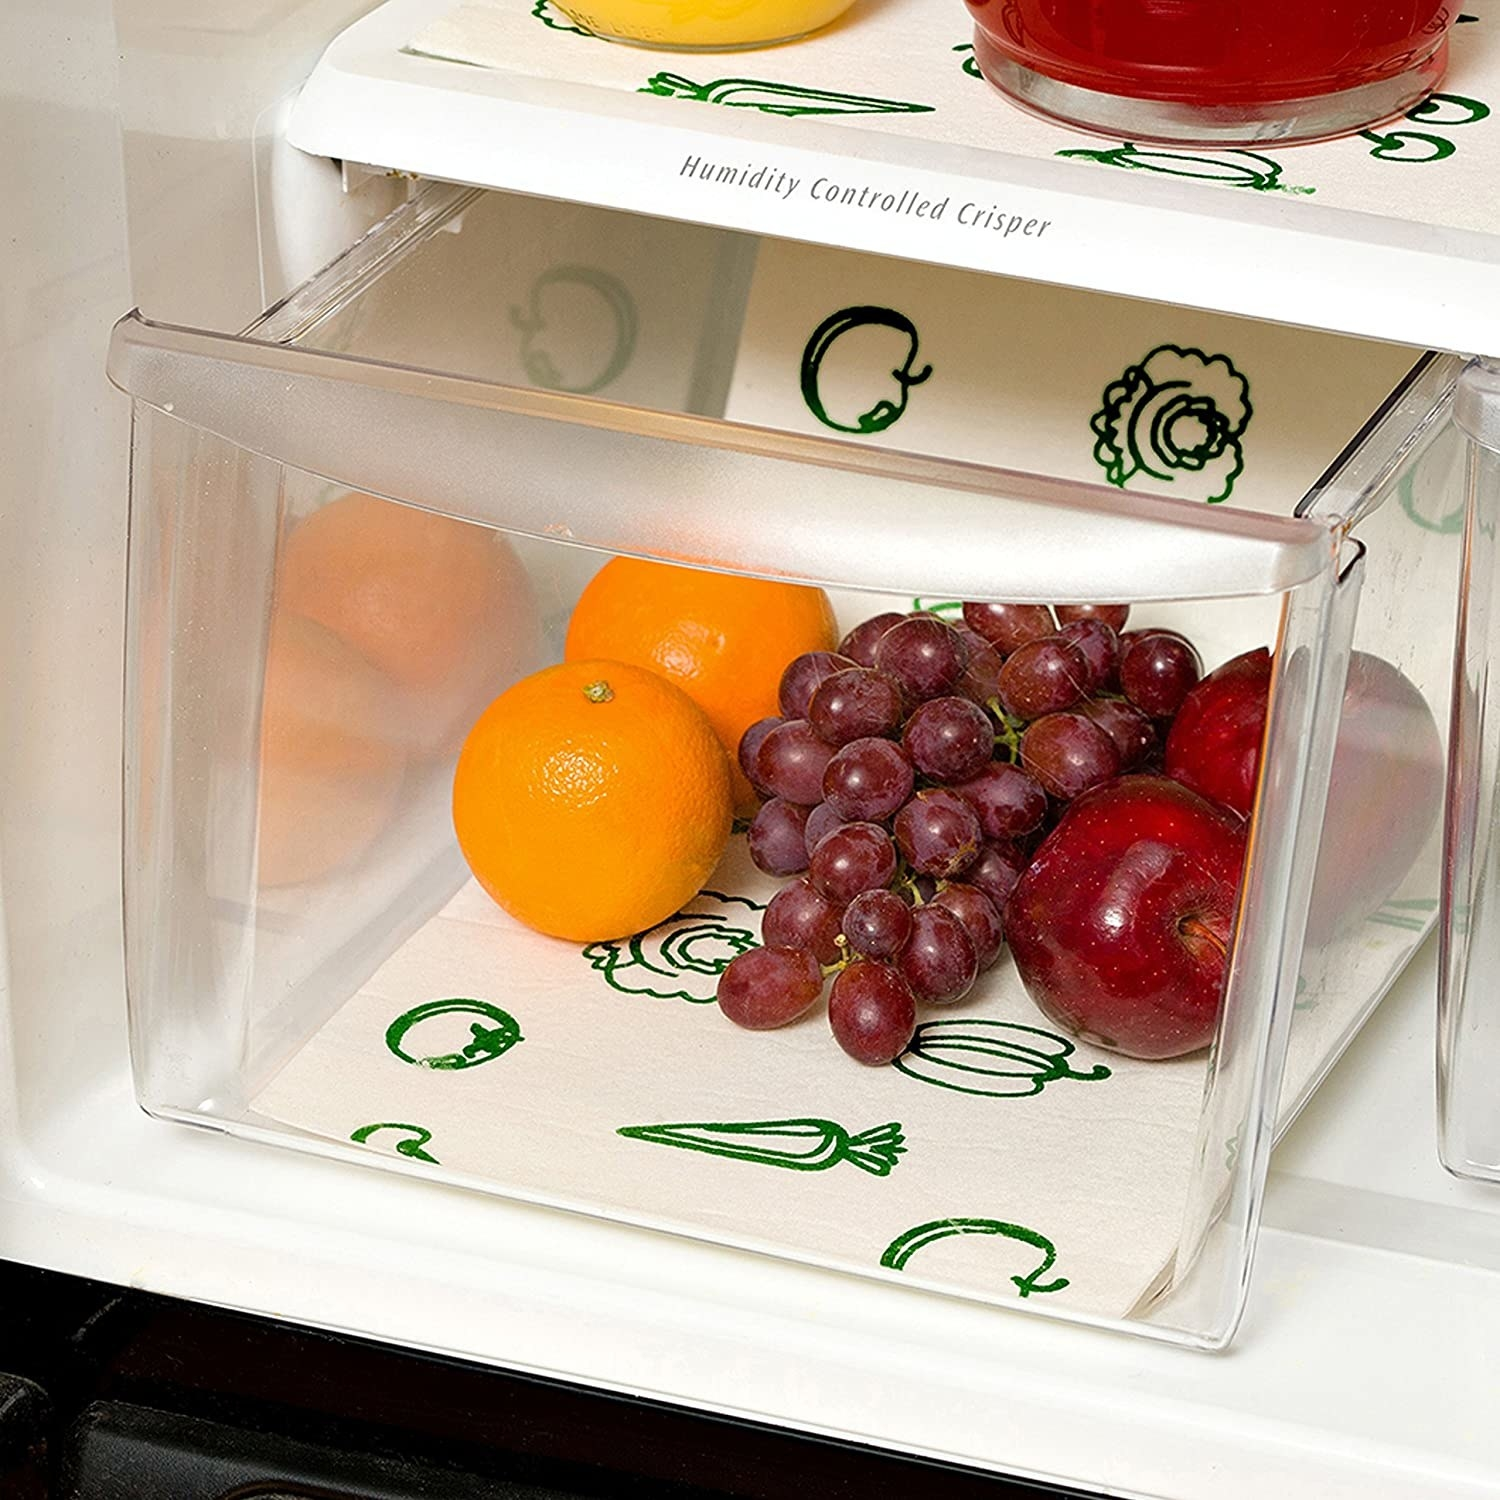 A lower bin in a refrigerator that has oranges, grapes and apples inside it The bin is lined with a spongy mat